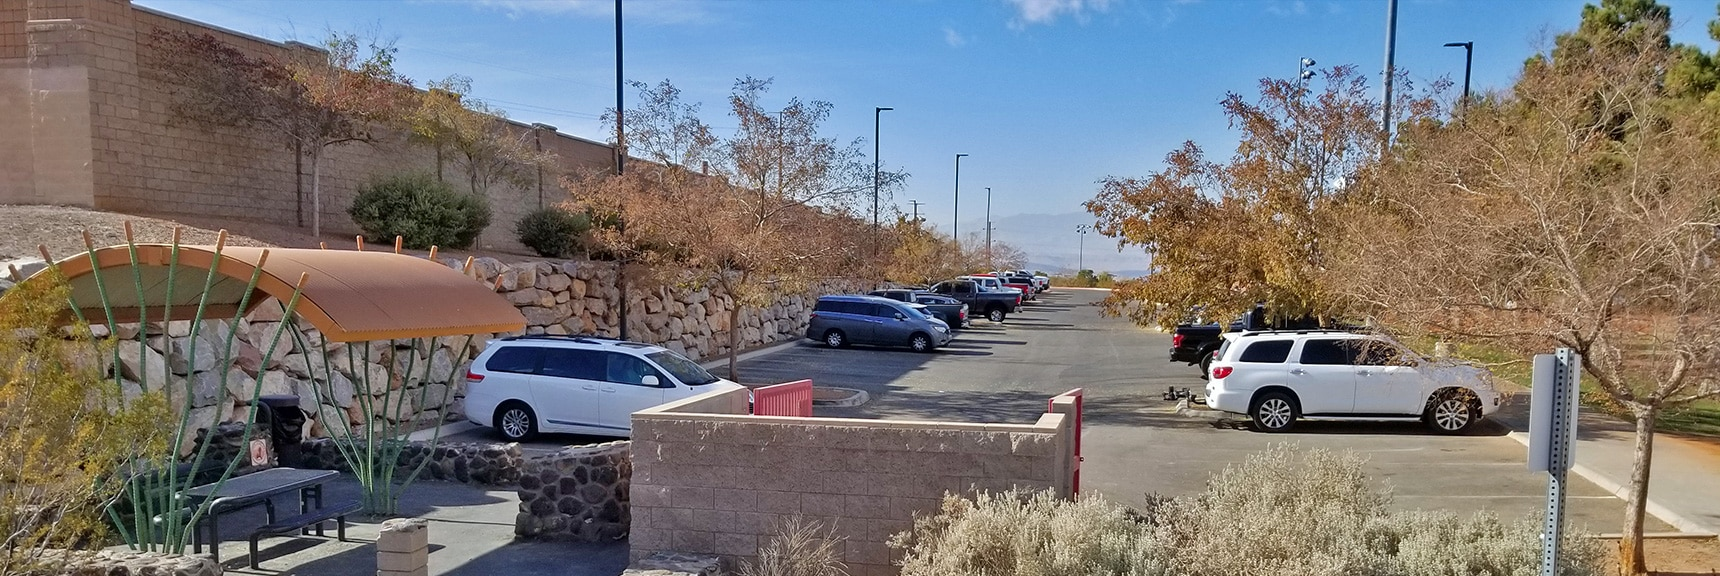 Arrival at the Trailhead in Anthem. Recommend Taking the Paved Anthem East Trail for the Final 3/4 Mile  McCullough Hills Trail in Sloan Canyon National Conservation Area, Nevada